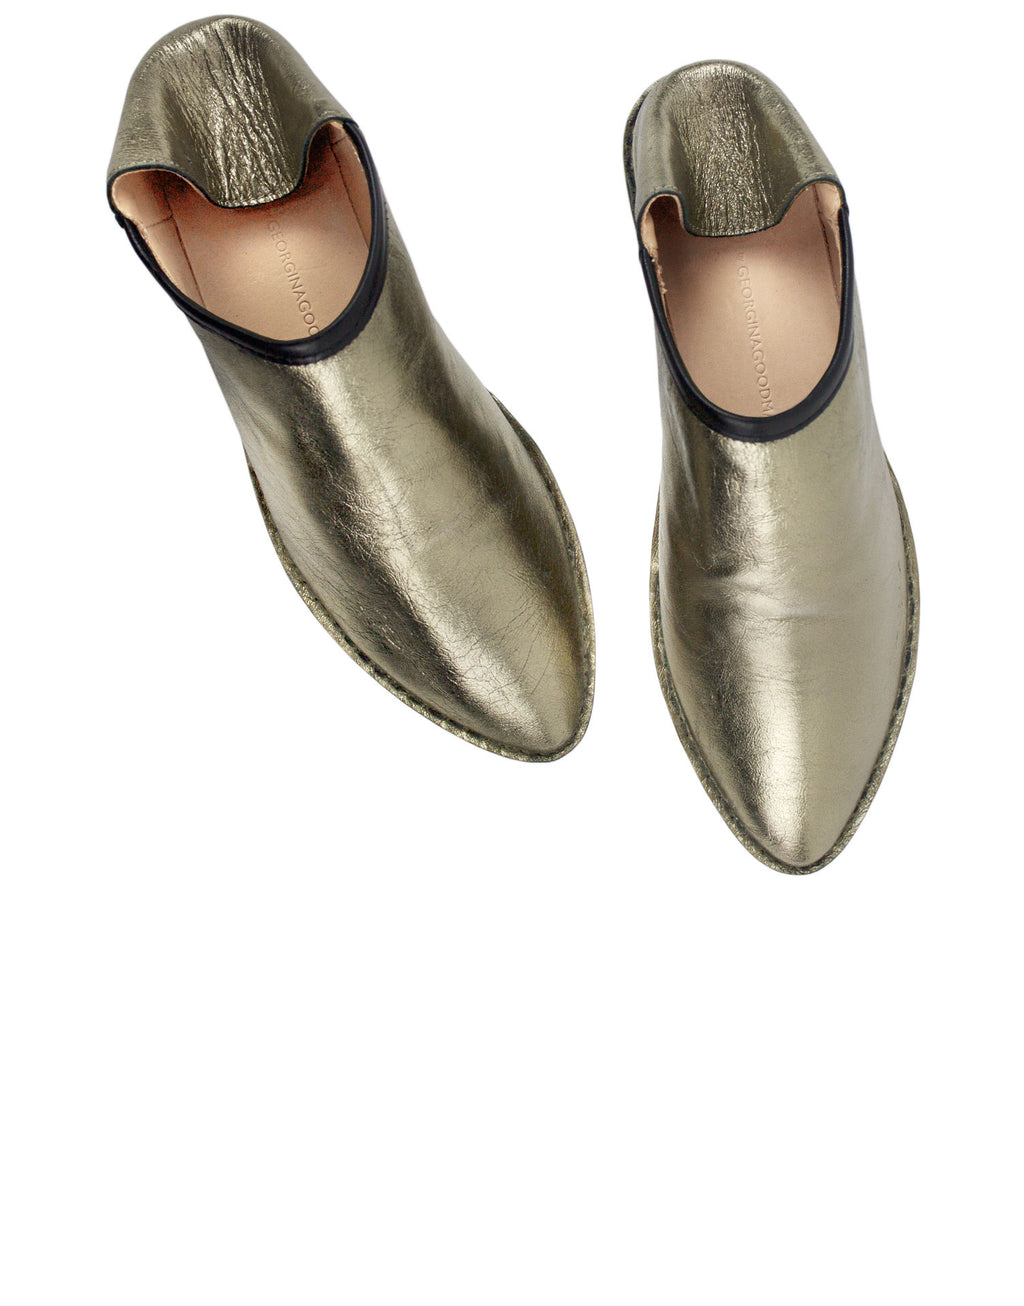 Gold leather slip on slipper shoes by designer Georgina Goodman. Shoes with cleaver features such as a hidden wedge and padded insole giving you all day comfort.